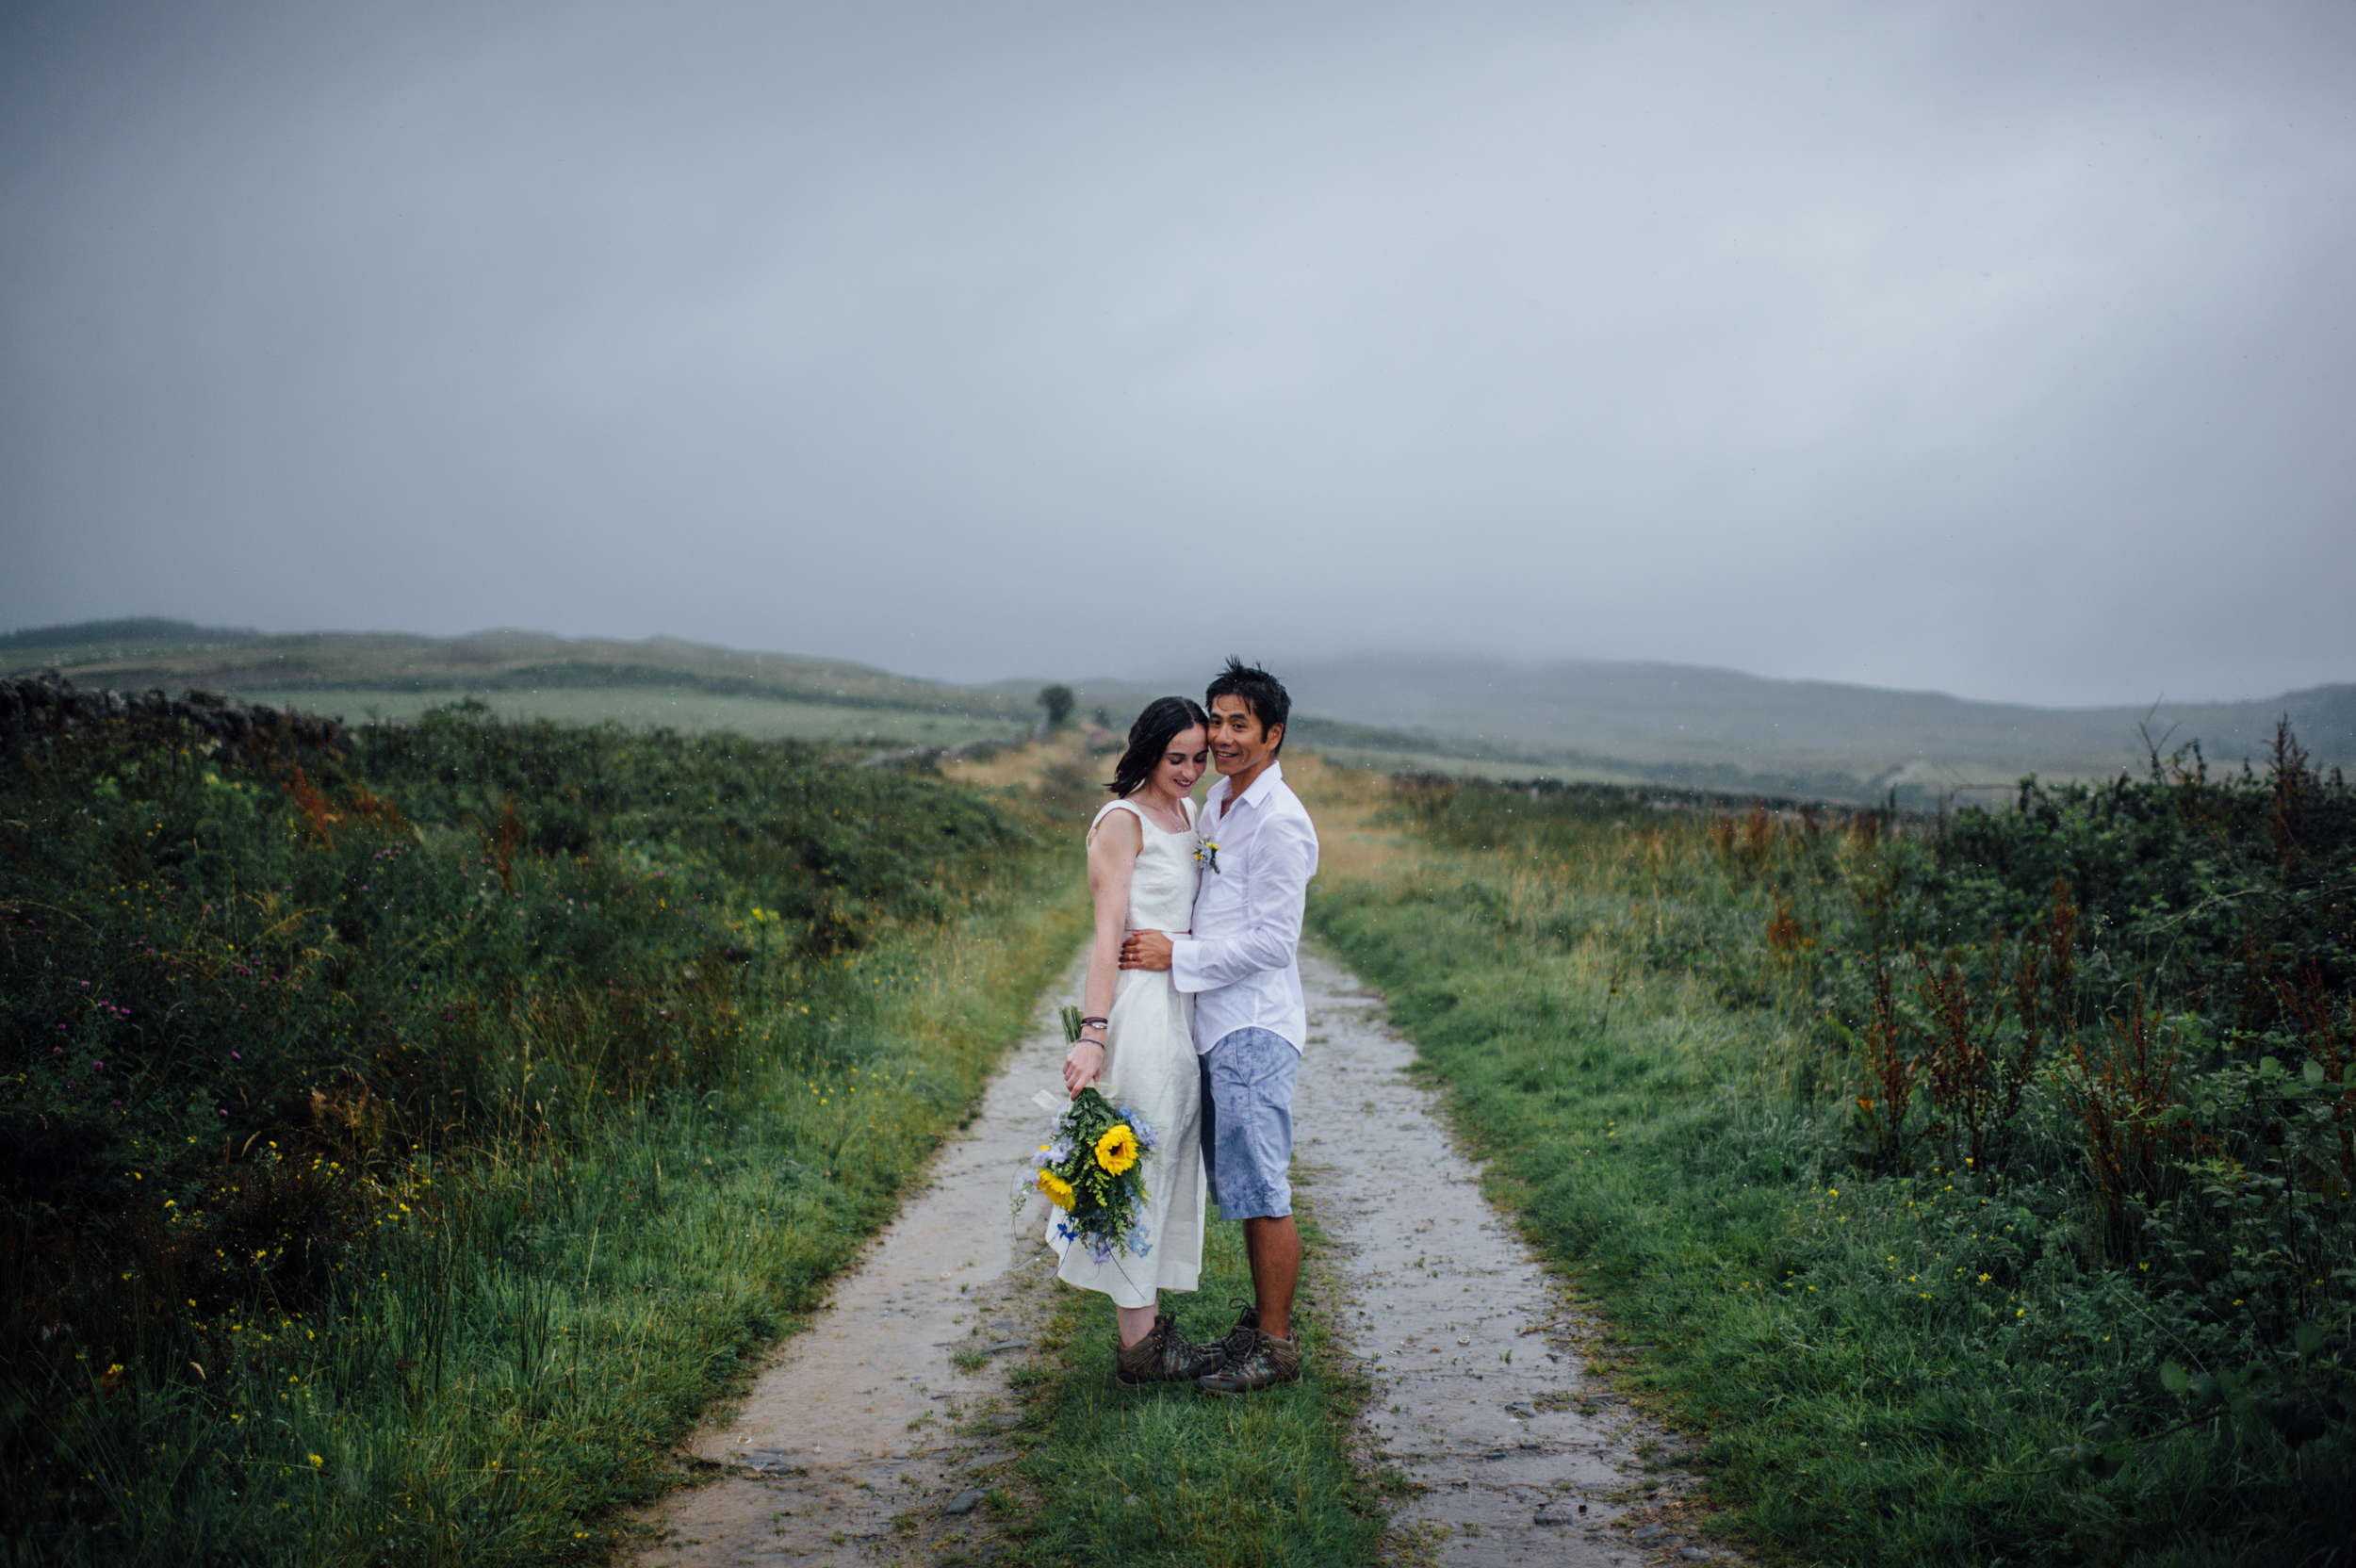 182-lisa-devine-photography-alternative-creative-wedding-photography-glasgow-crear-scotland-uk.JPG